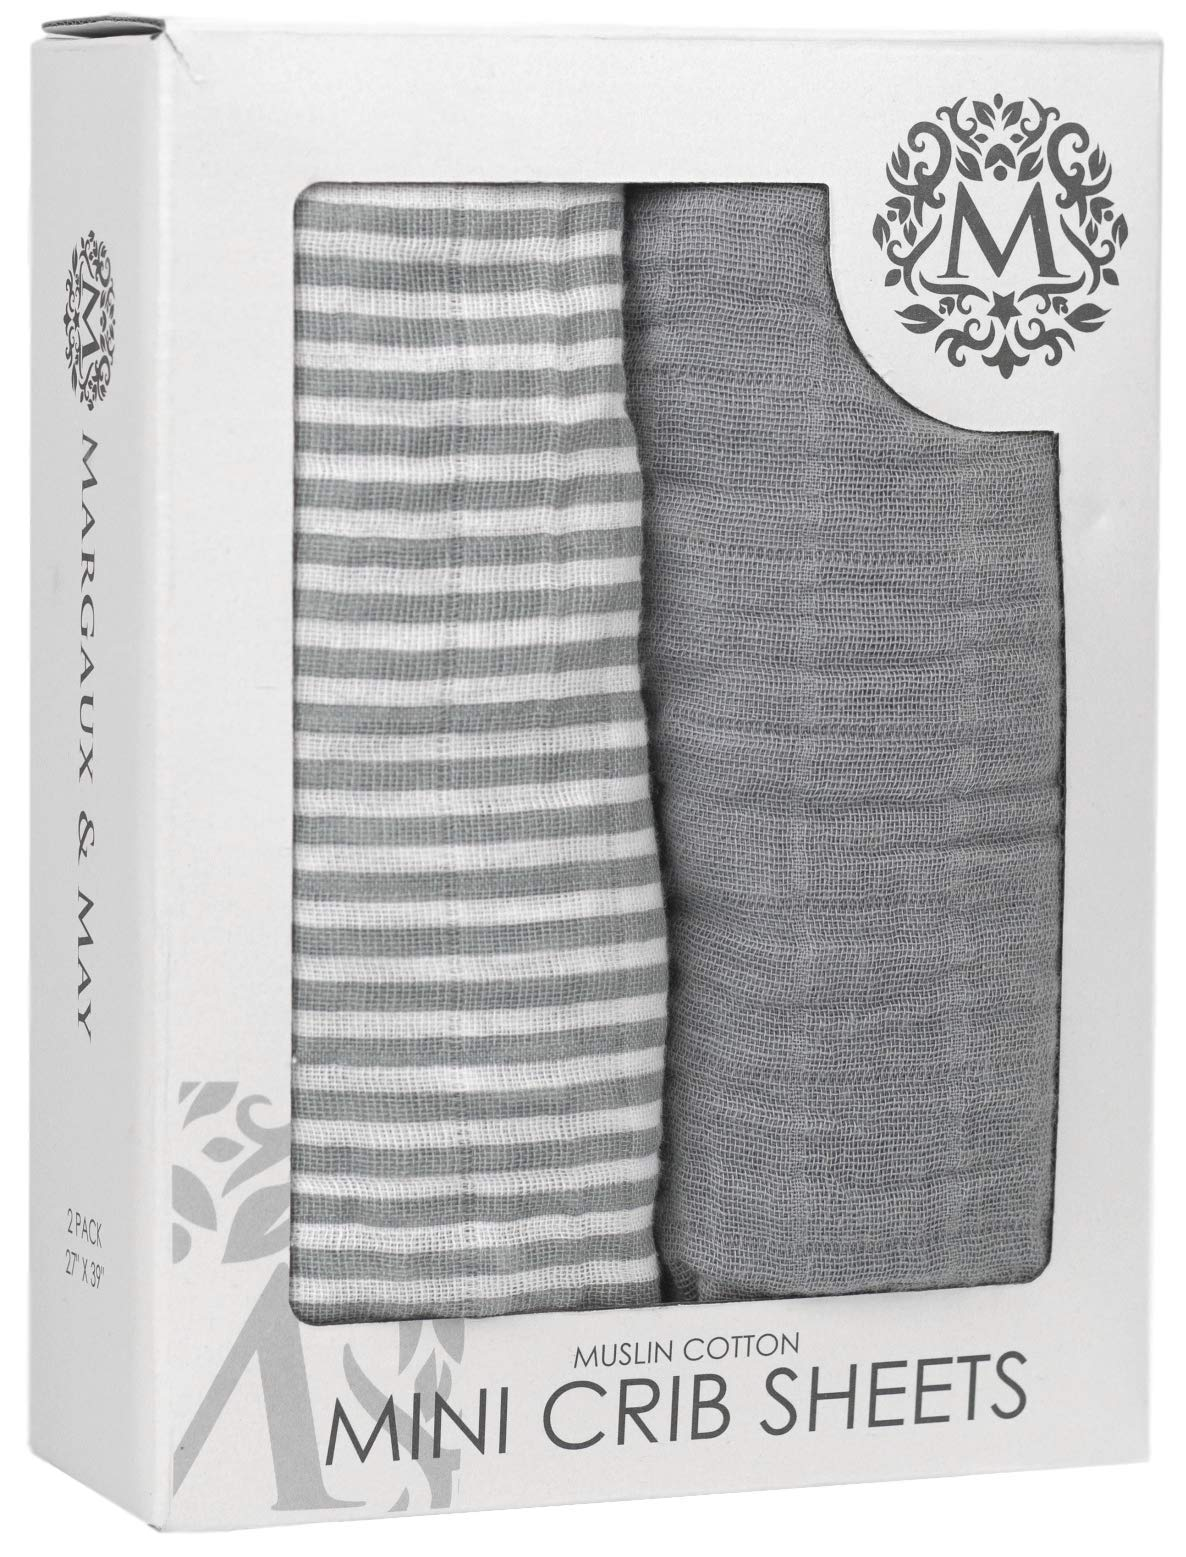 Premium Mini Crib Sheets   100% Muslin Cotton Fitted Sheet Set   2 Pack   Perfect for Graco Playards, Mini Crib Mattress and Pack n Play Portable Cots   Grey & Stripes Design - Margaux & May by Margaux & May